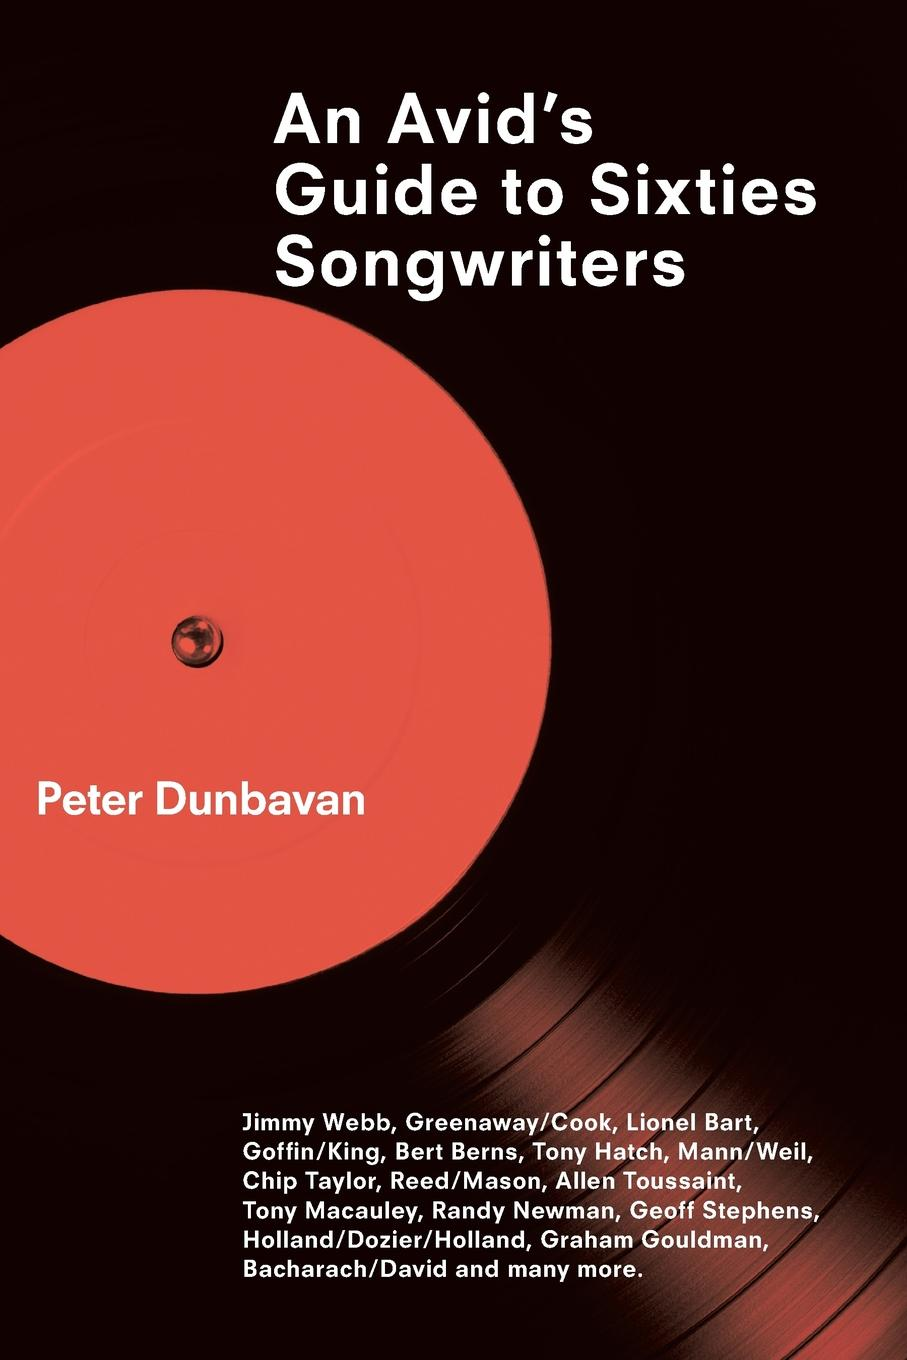 An Avid.s Guide to Sixties Songwriters